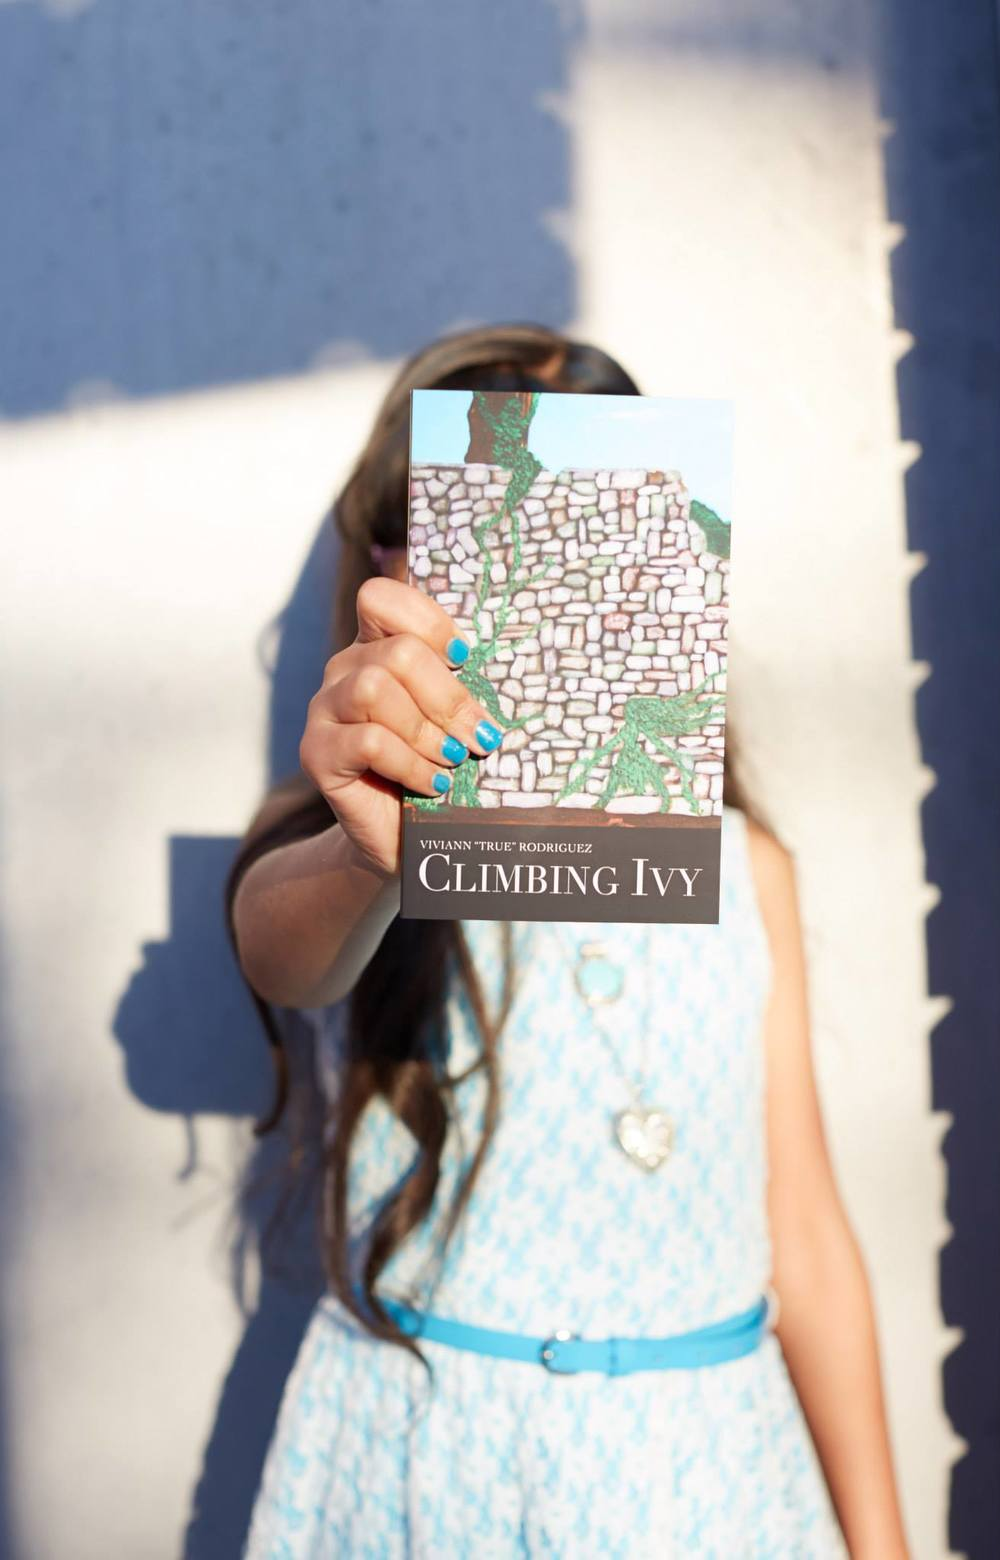 Climbing Ivy Book Cover